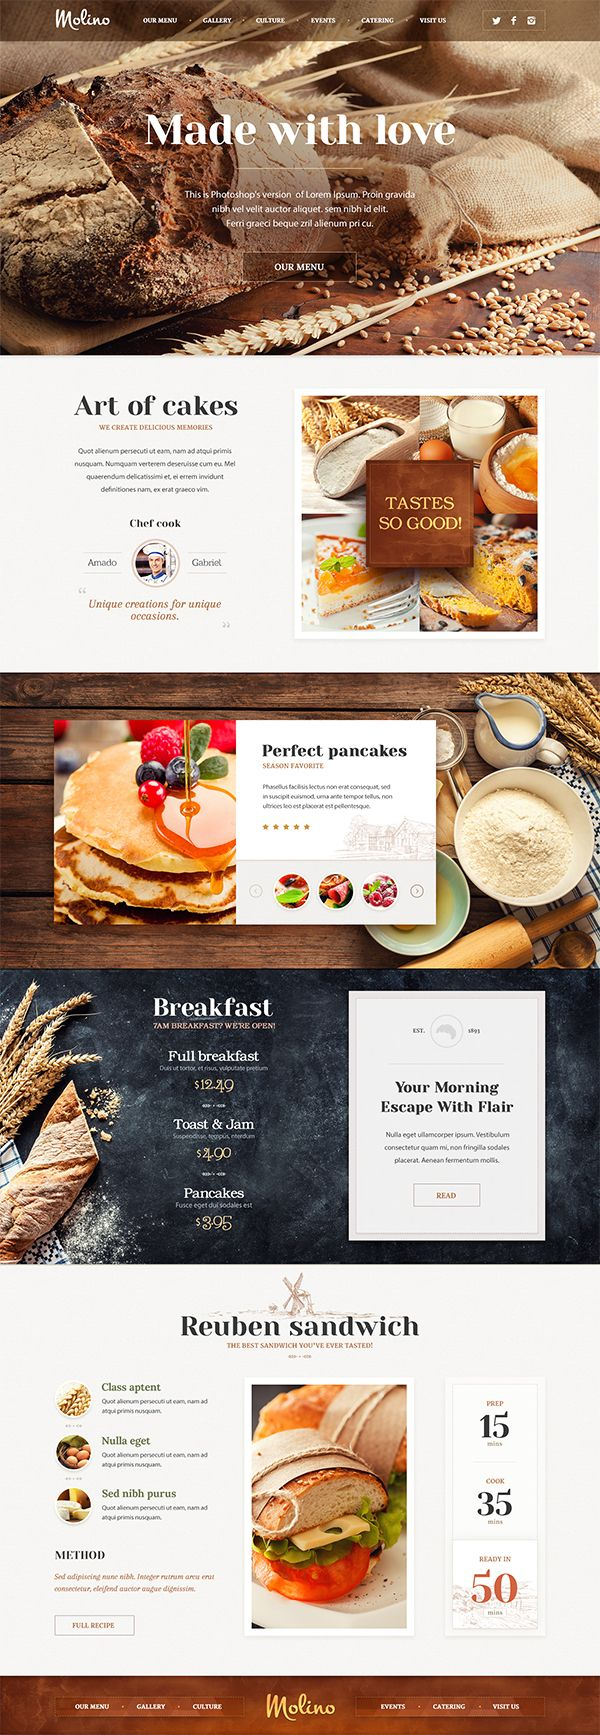 Website design: Best of 2014 by Mike, via Behance